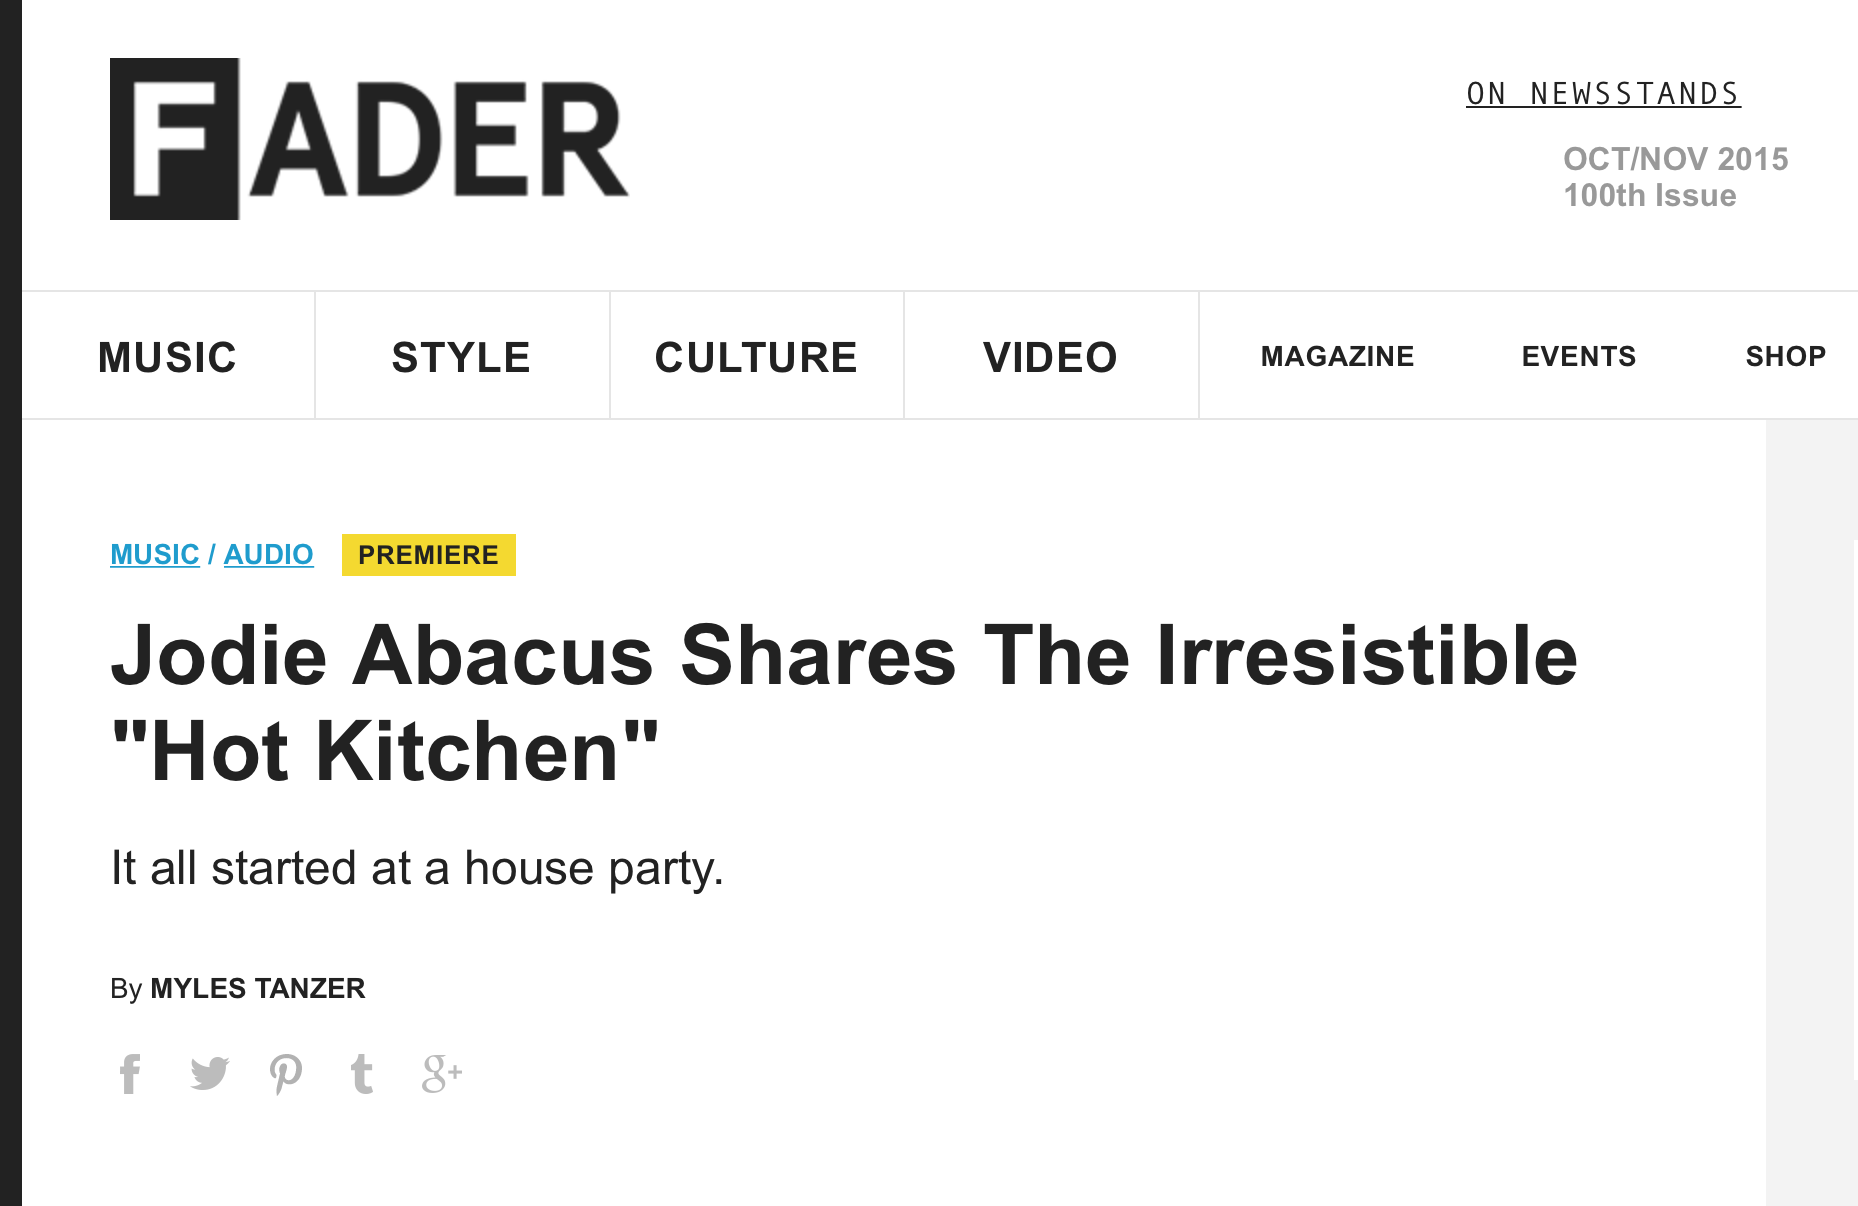 http://uk.thefader.com/2015/12/03/jodie-abacus-hot-kitchen-premiere